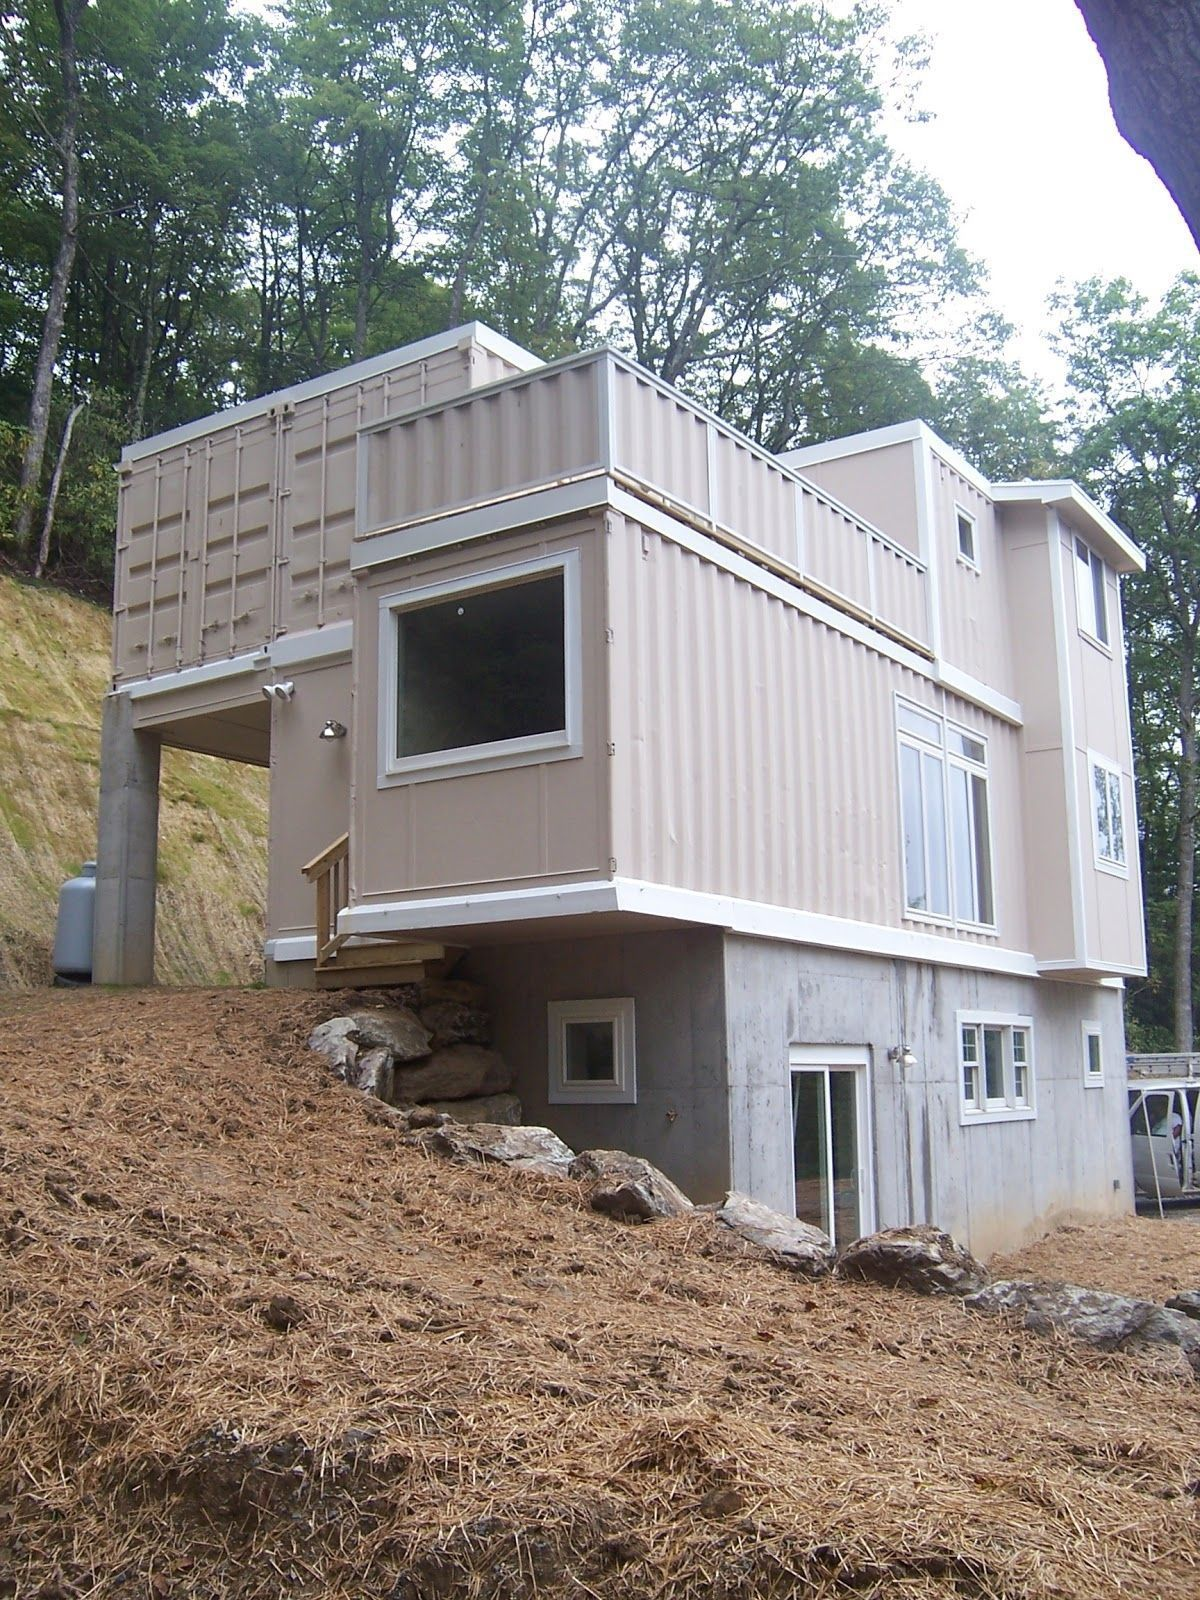 Modern shipping container homes in shipping container home - Shipping container homes designs ...